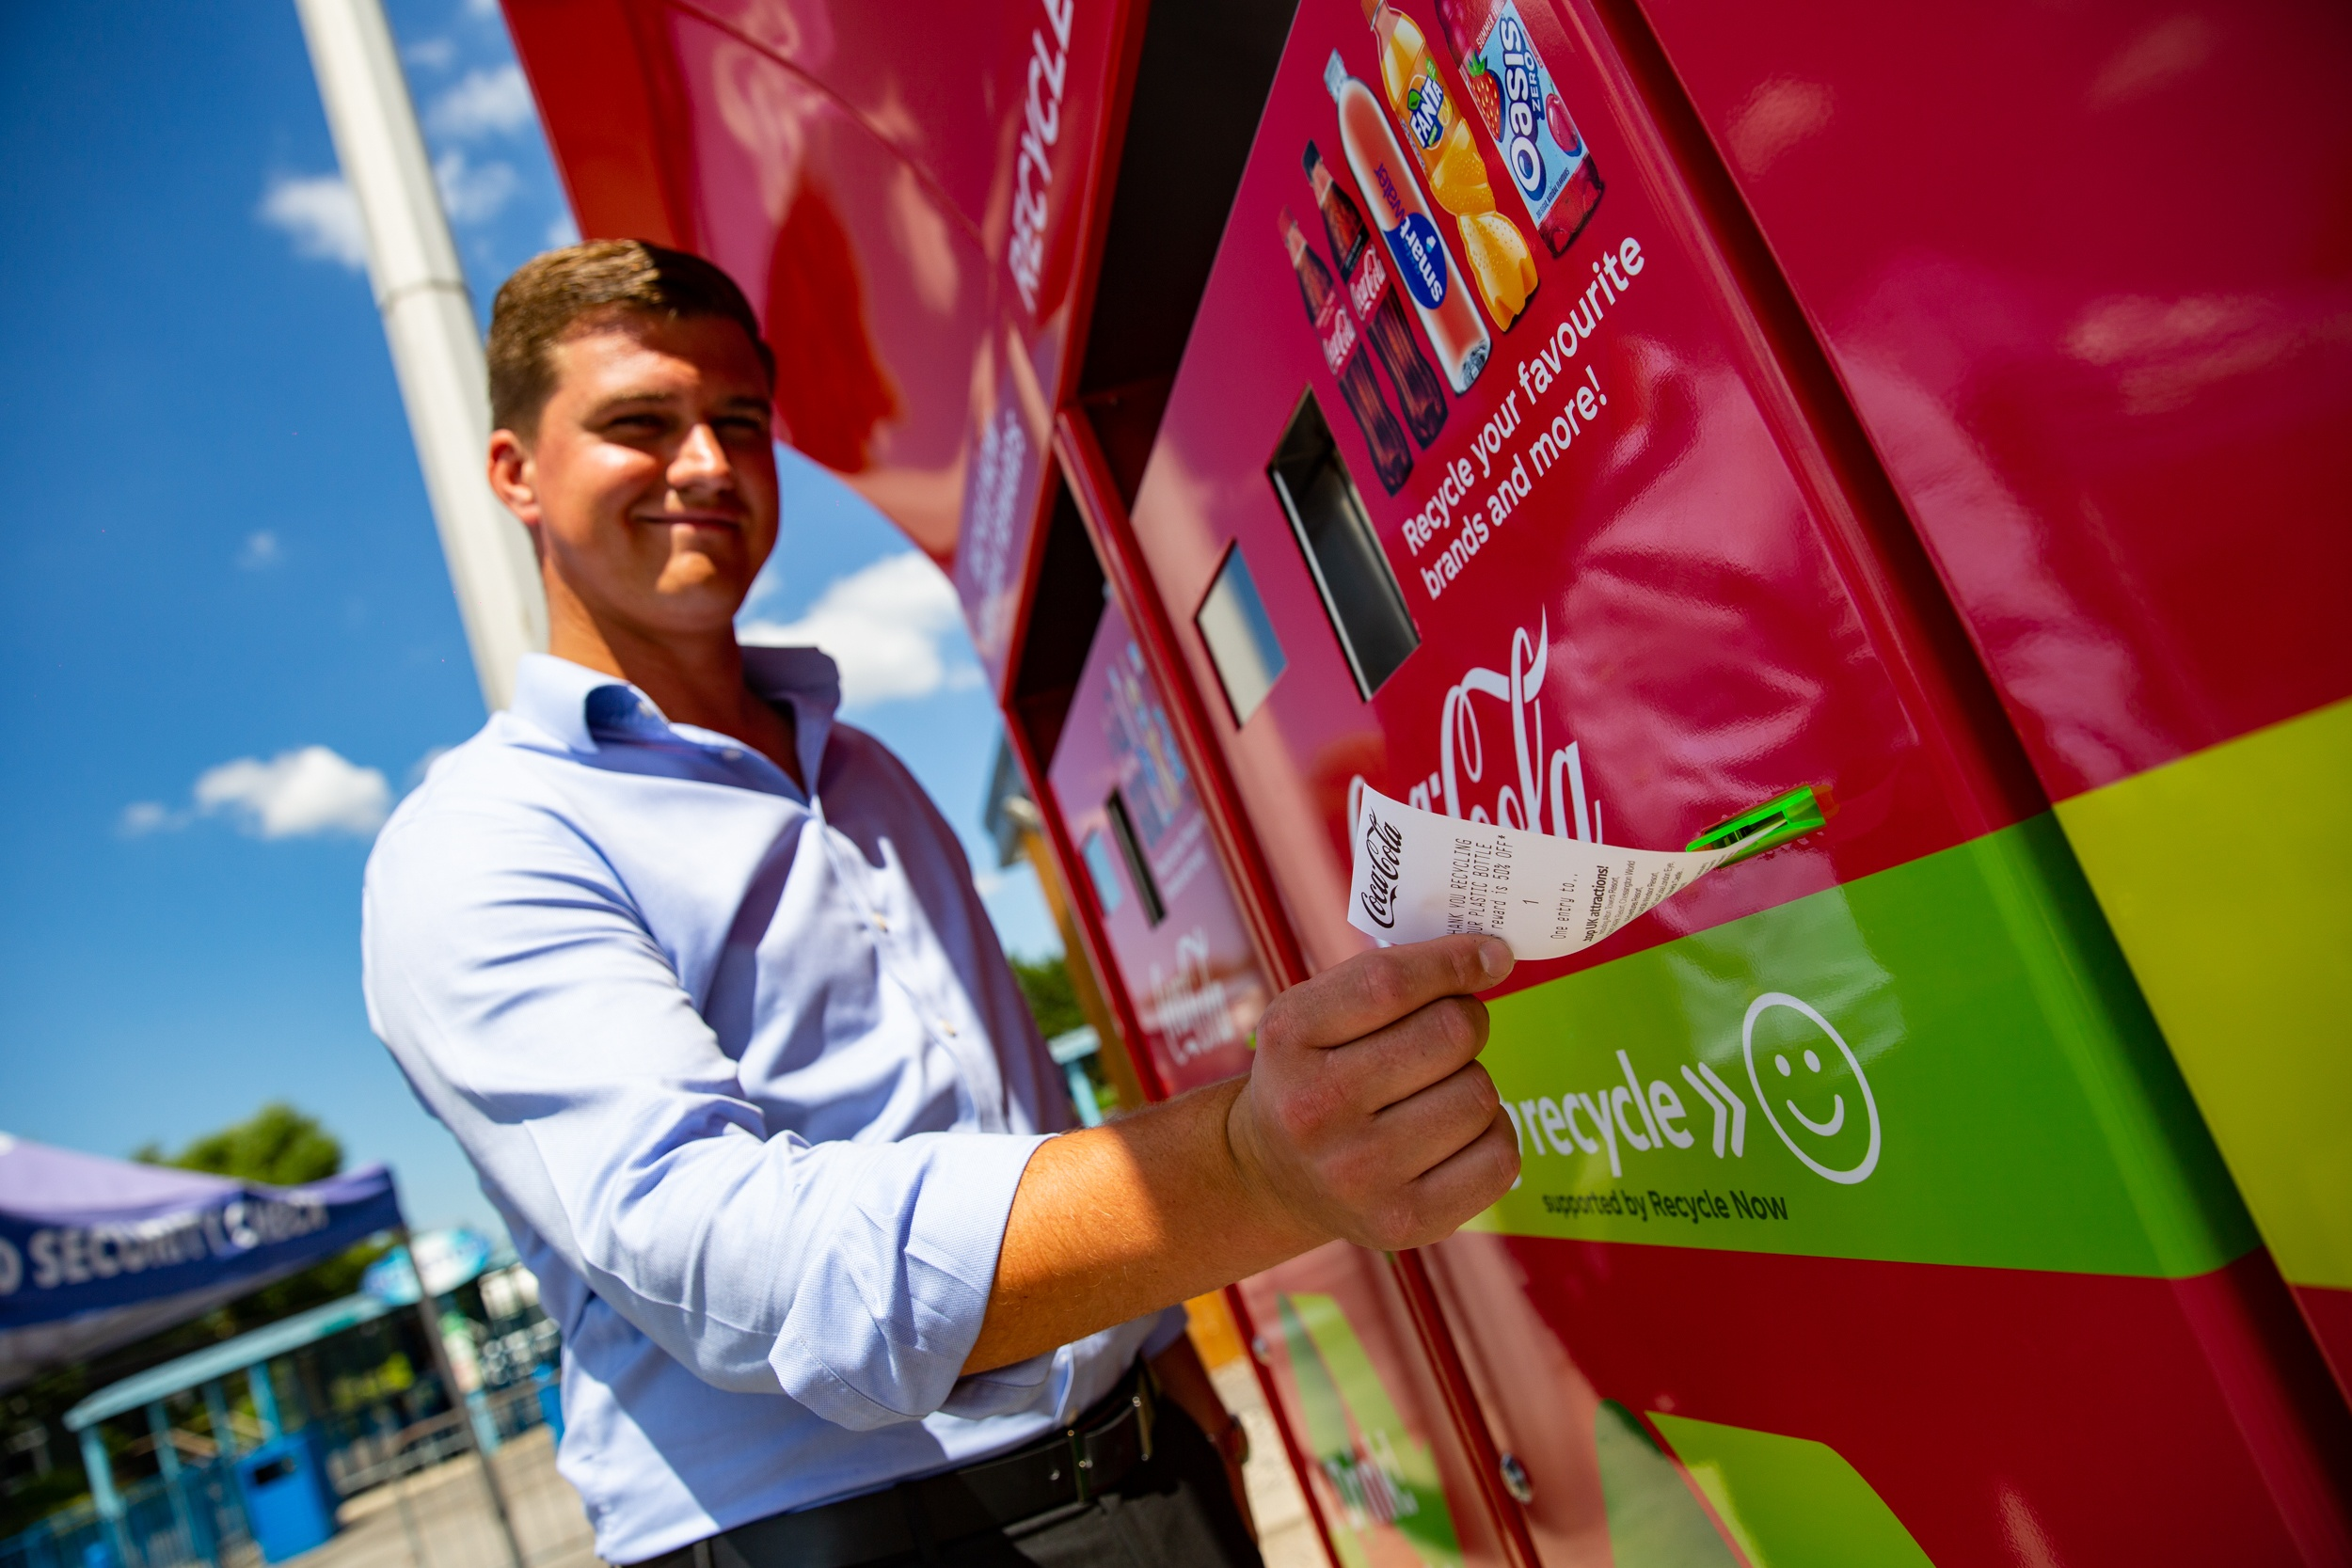 Coca-Cola GB launches reverse vending machine trial with Merlin Entertainments (3)-1